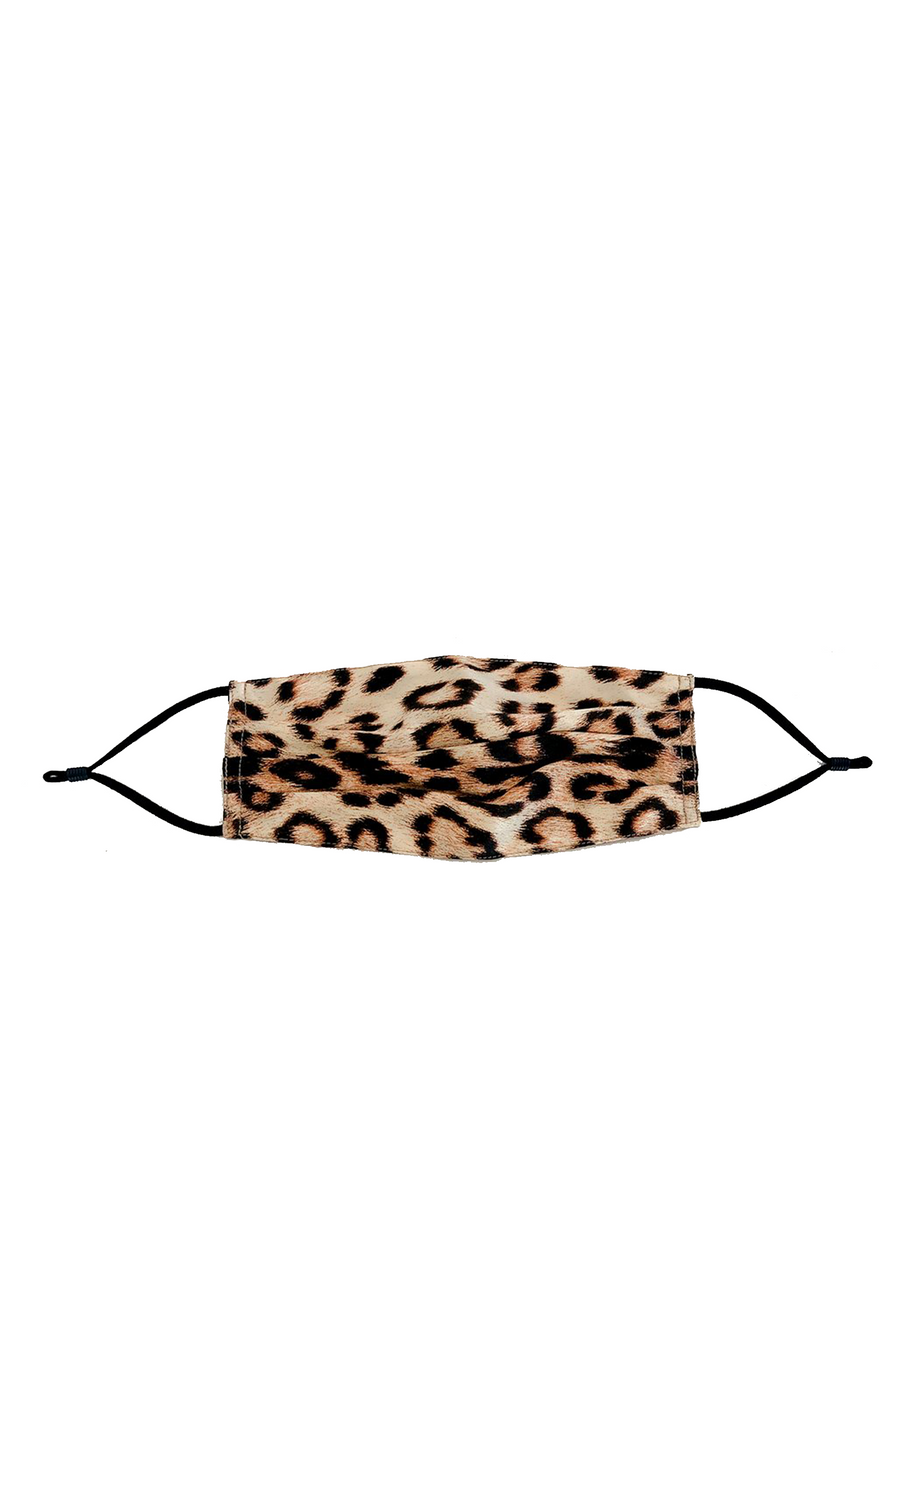 Silk Face Mask in Leopard